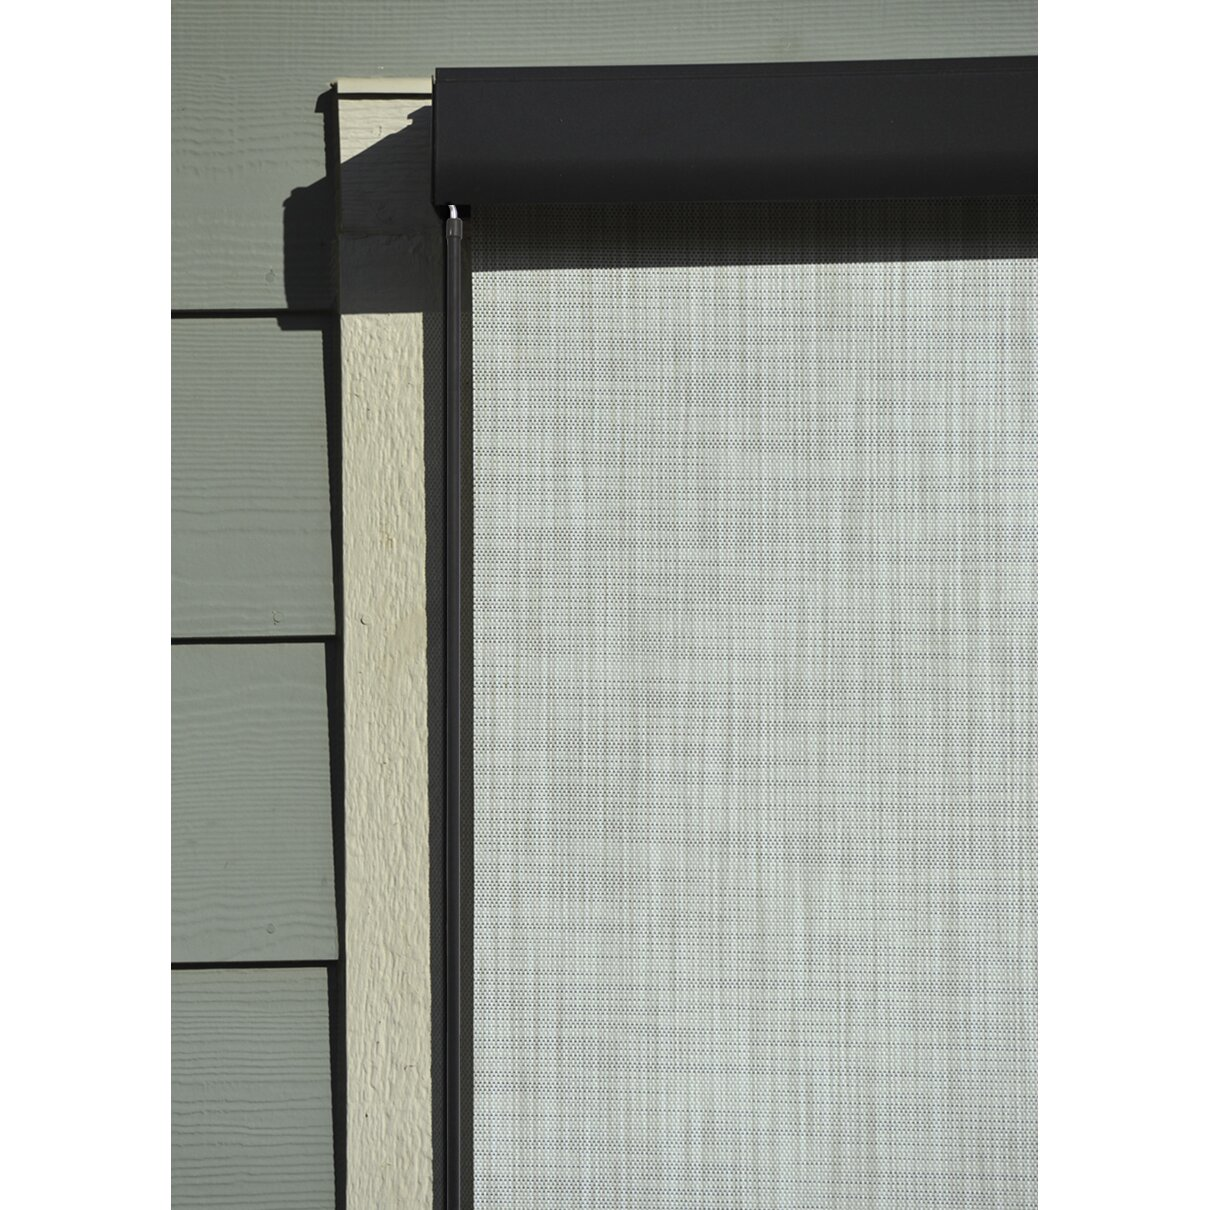 Keystone Fabrics Pole Operated Exterior Outdoor Solar Shades Reviews Wayfair